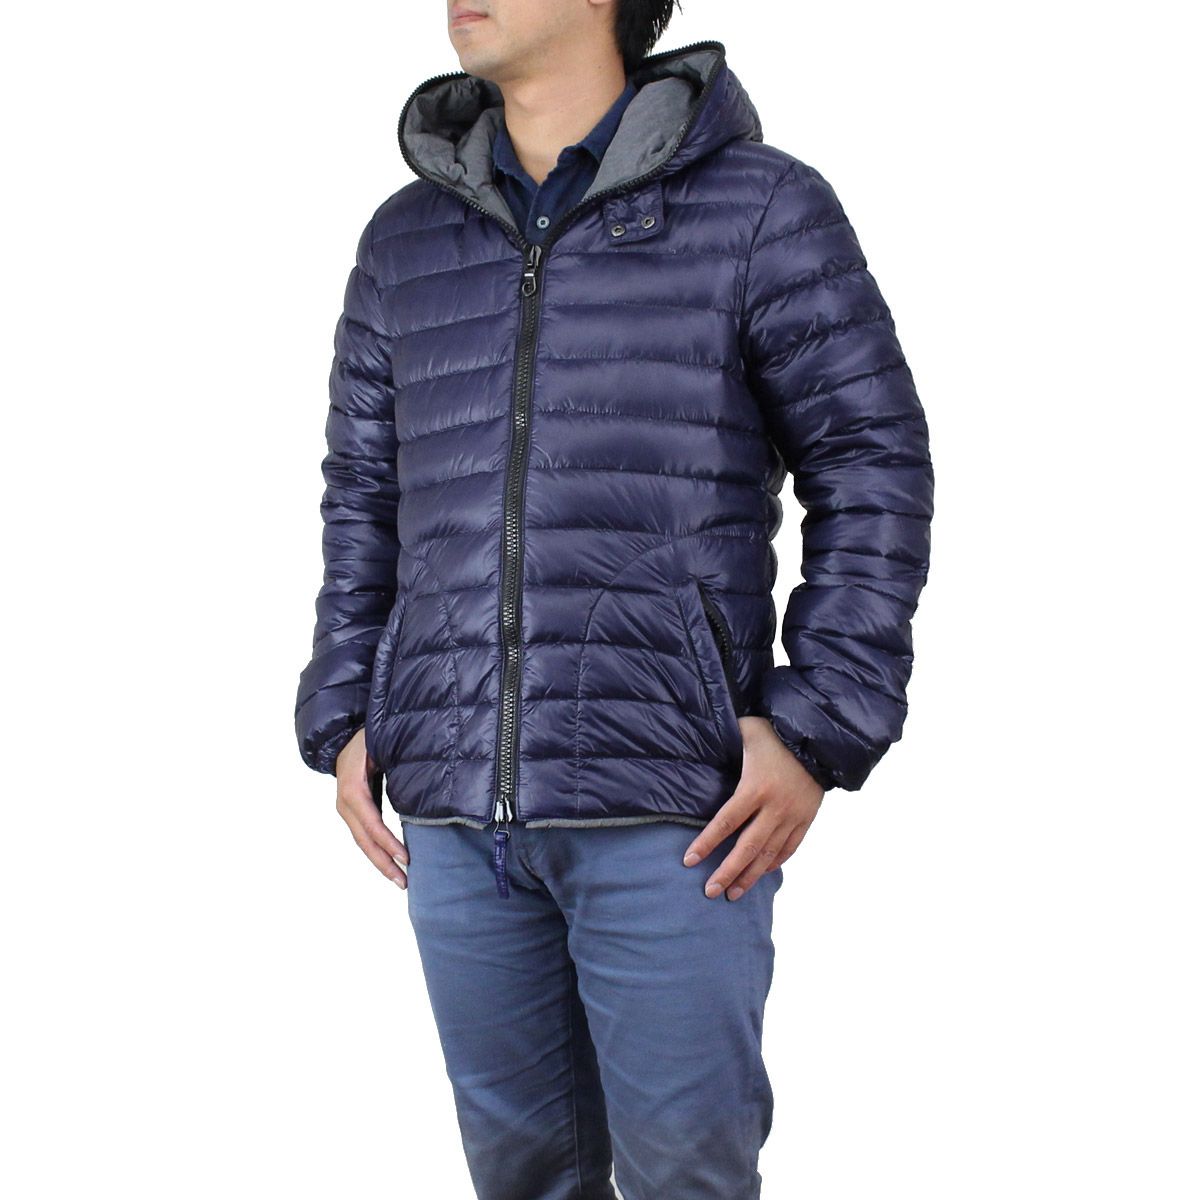 hot sale online 0f051 fe3a3 (DUVETICA) duvetica down jacket LAIO 32-U407000-1091-756 ASTRO Navy  systems( taxfree/send by EMS/authentic/A brand new item )